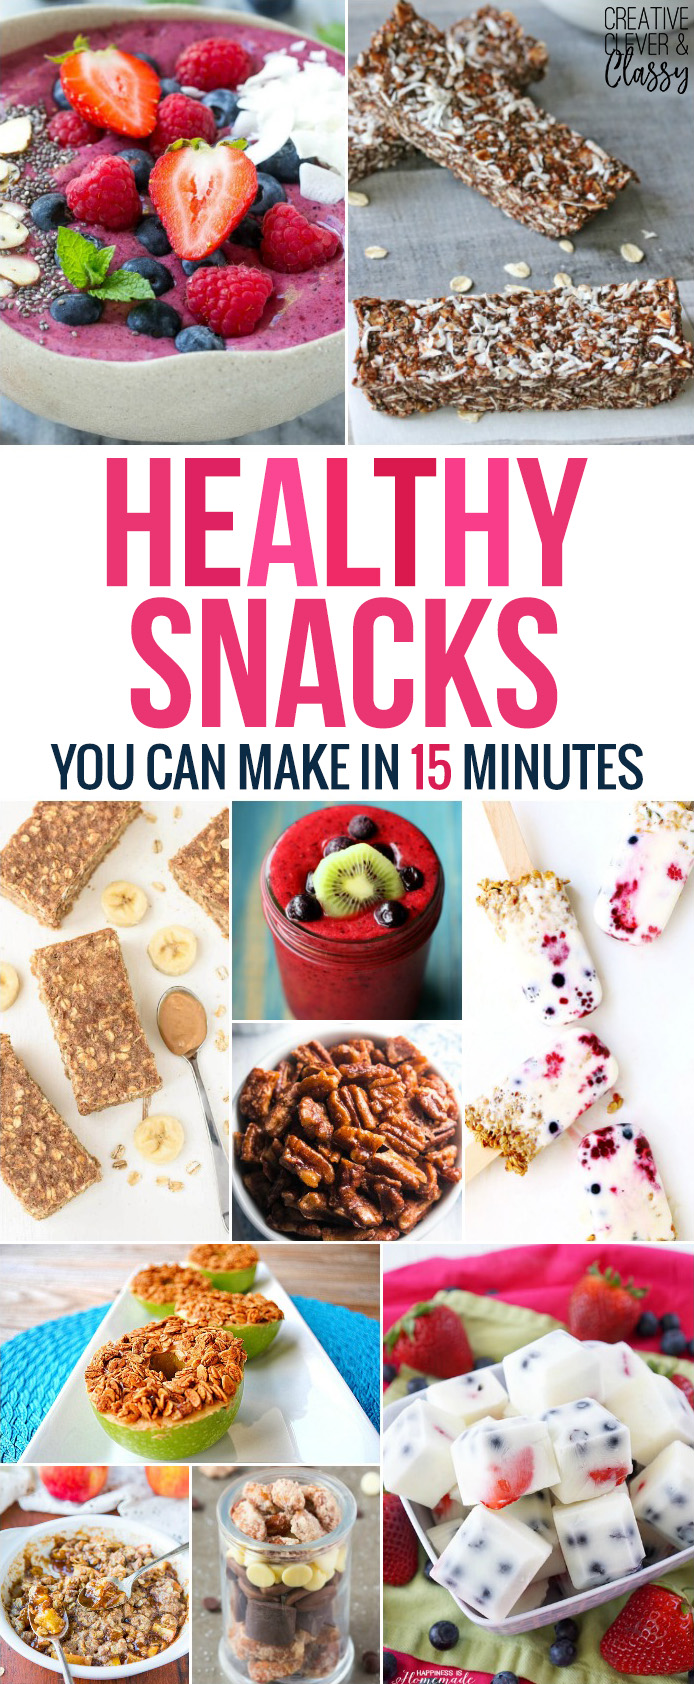 Healthy eating has never been tastier. Enjoy these quick and easy healthy snacks you can create in 15 minutes and munch on all day.